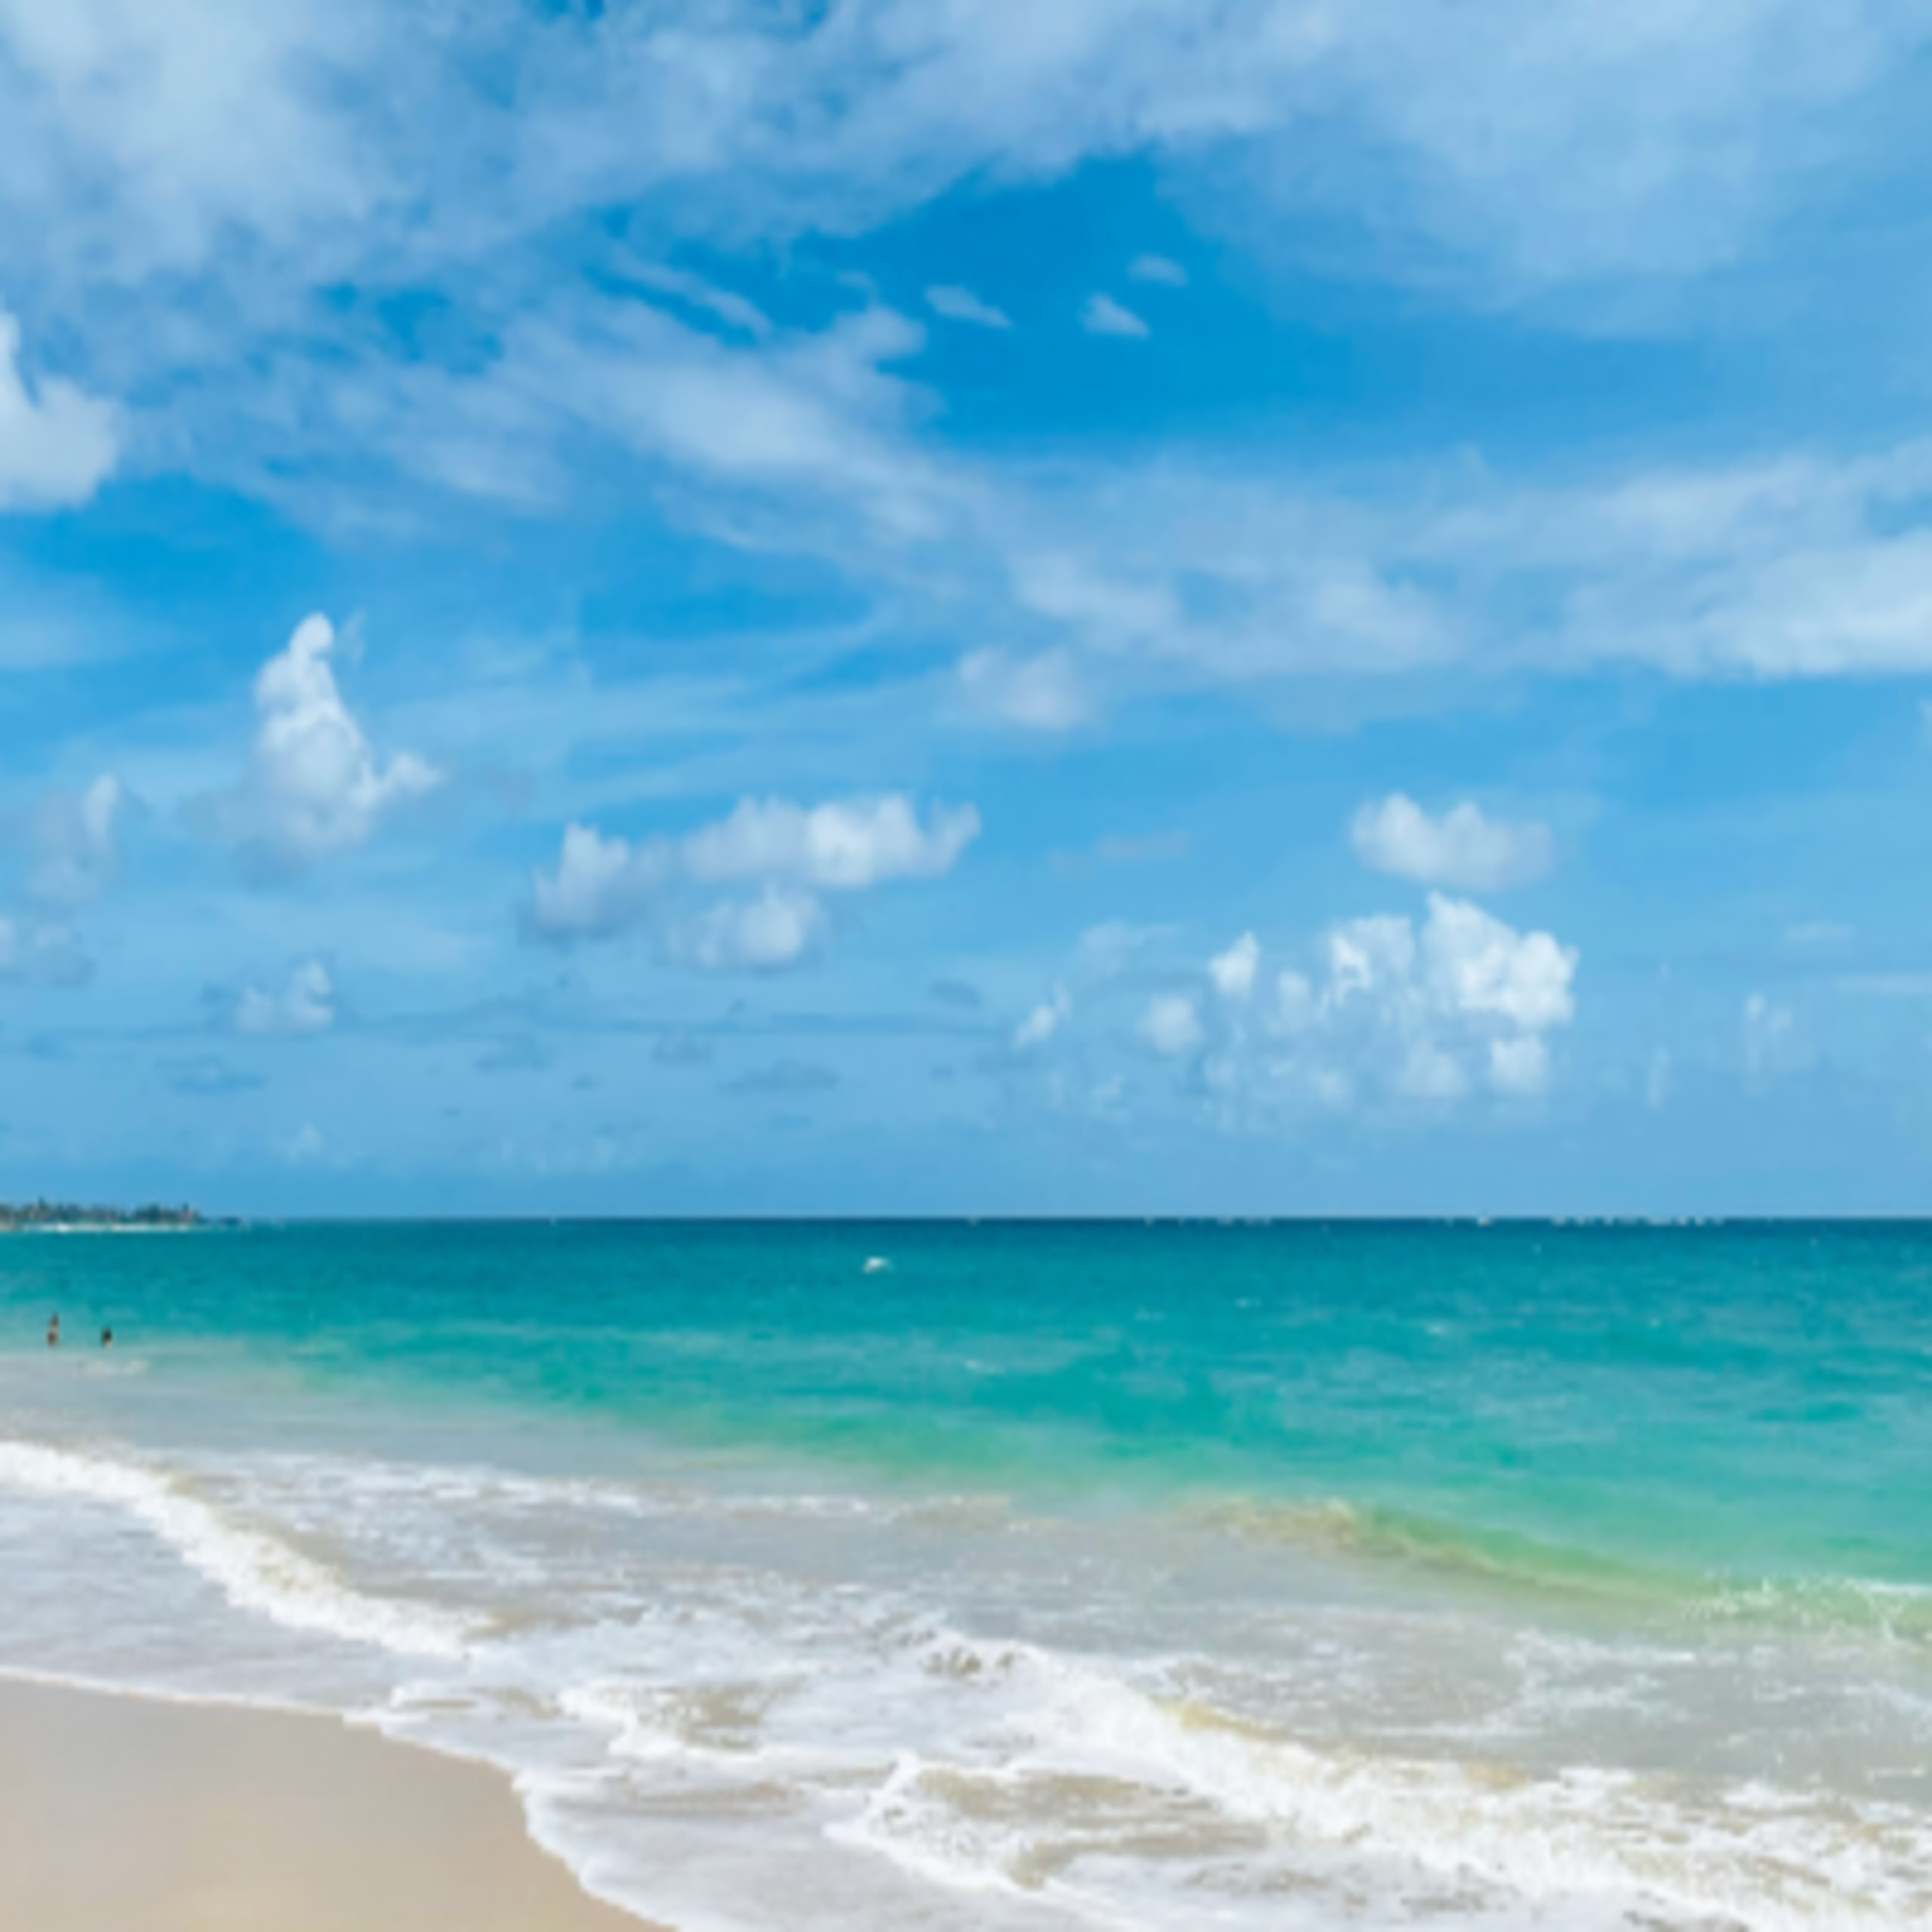 Fully vaccinated? Traveling to Puerto Rico just got breezier